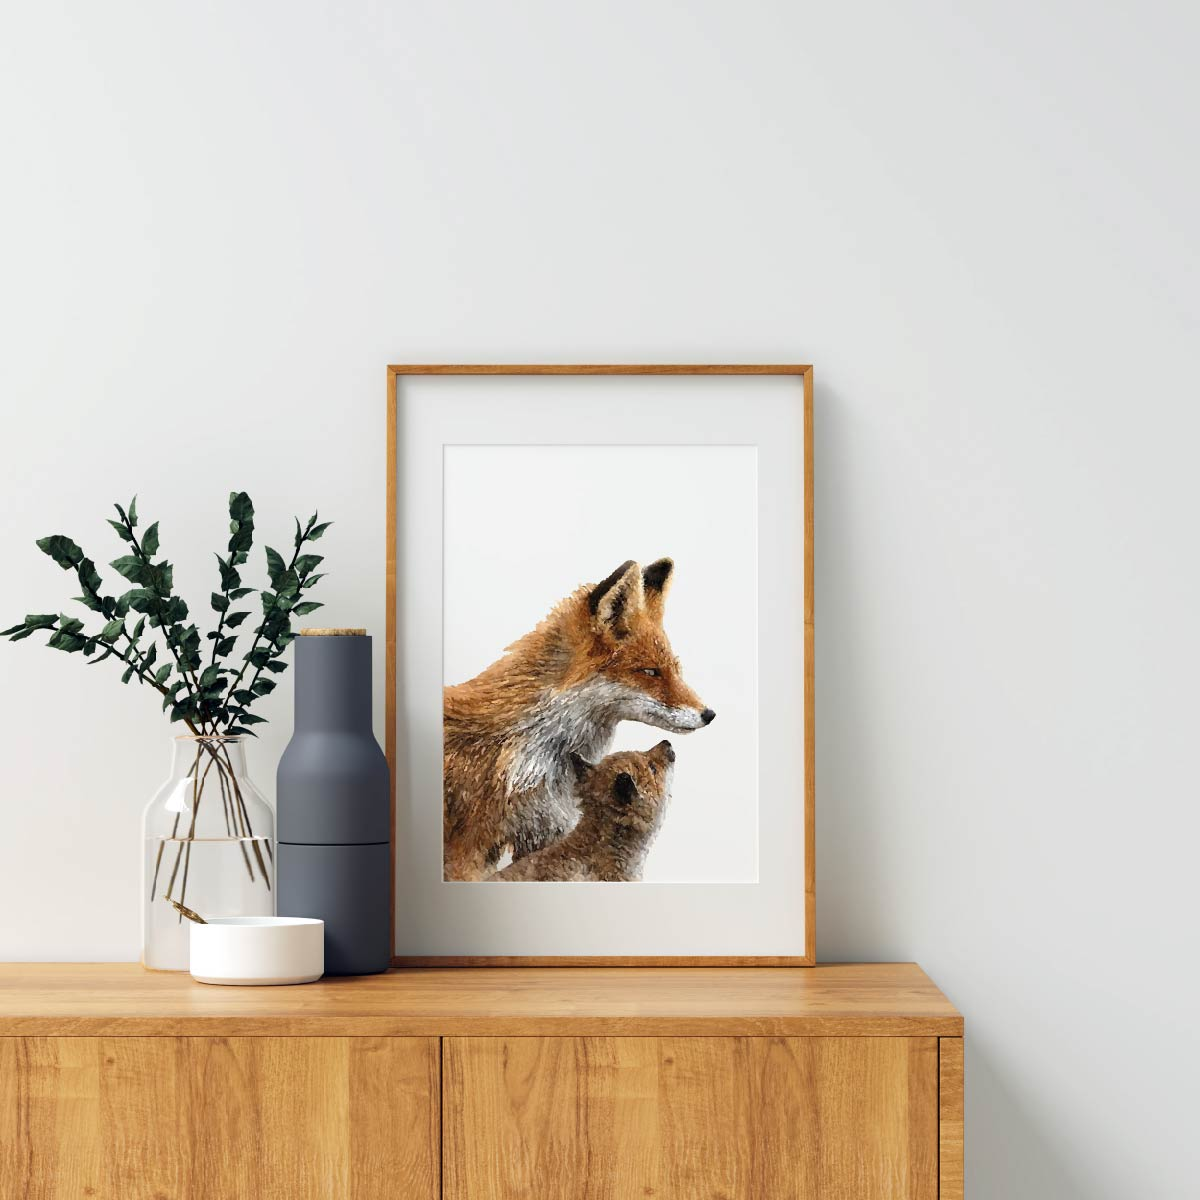 Lizzie Hammond Limited Edition Numbered Prints